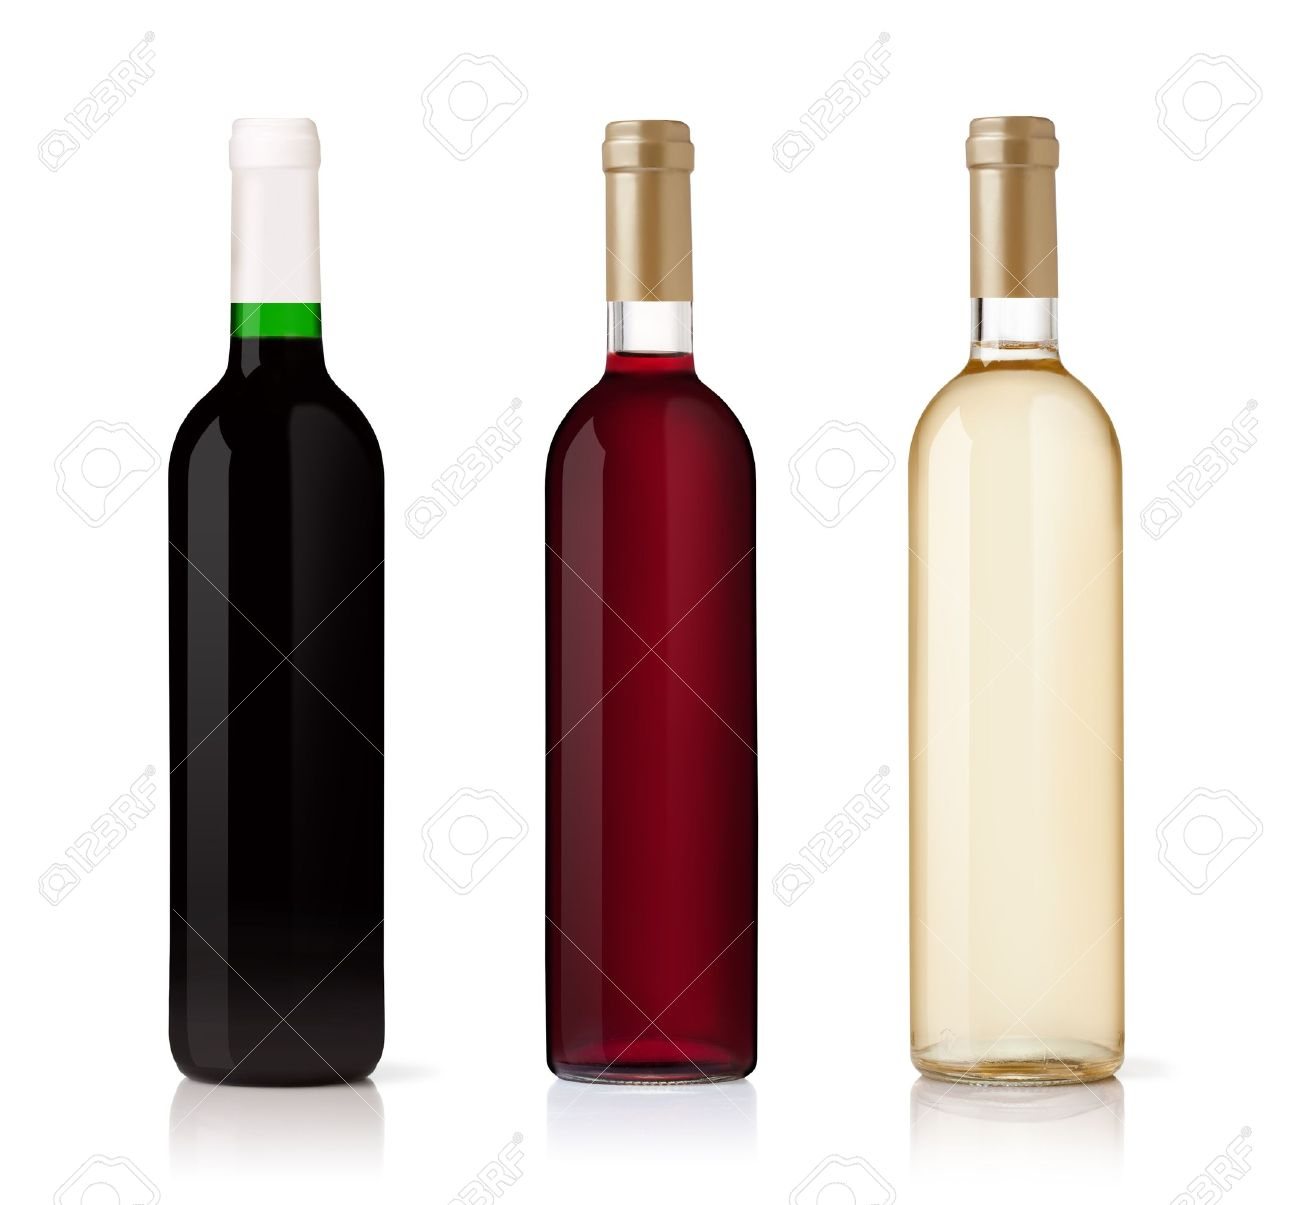 set of white rose and red wine bottles isolated on white background stock bottle red wine